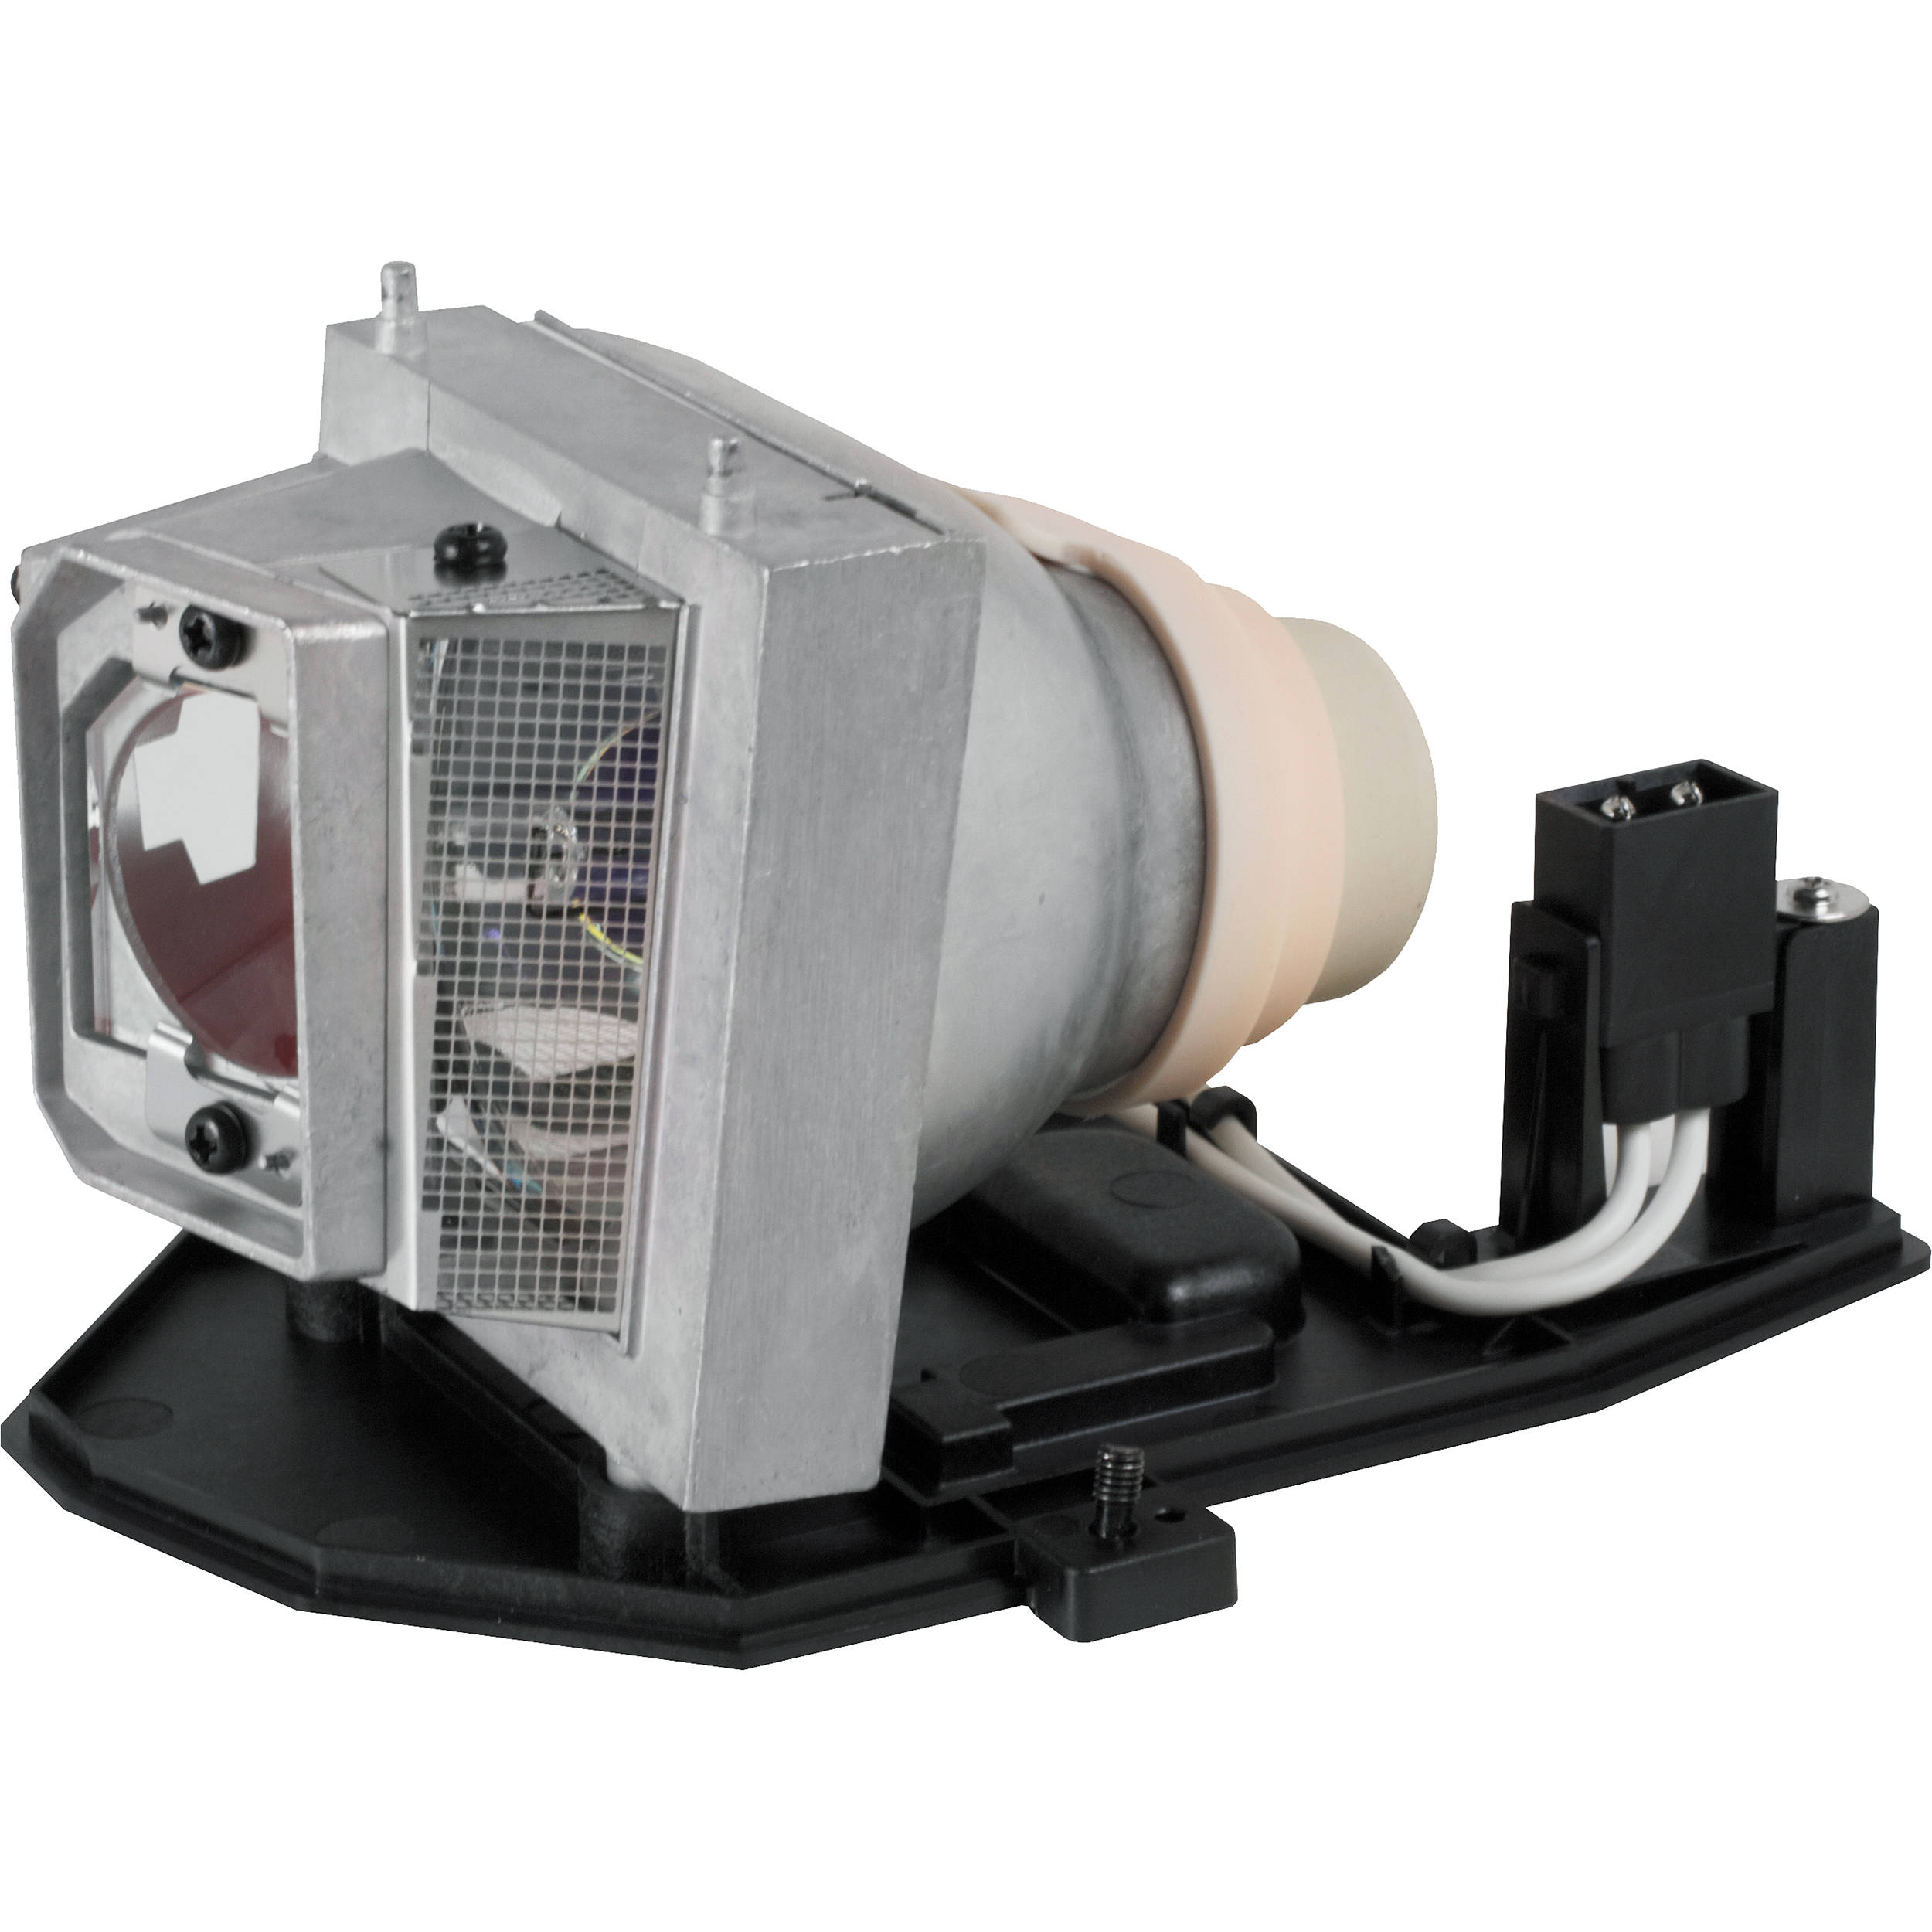 Optoma Technology BL-FU190A UHP 190W Projector Lamp BL-FU190A